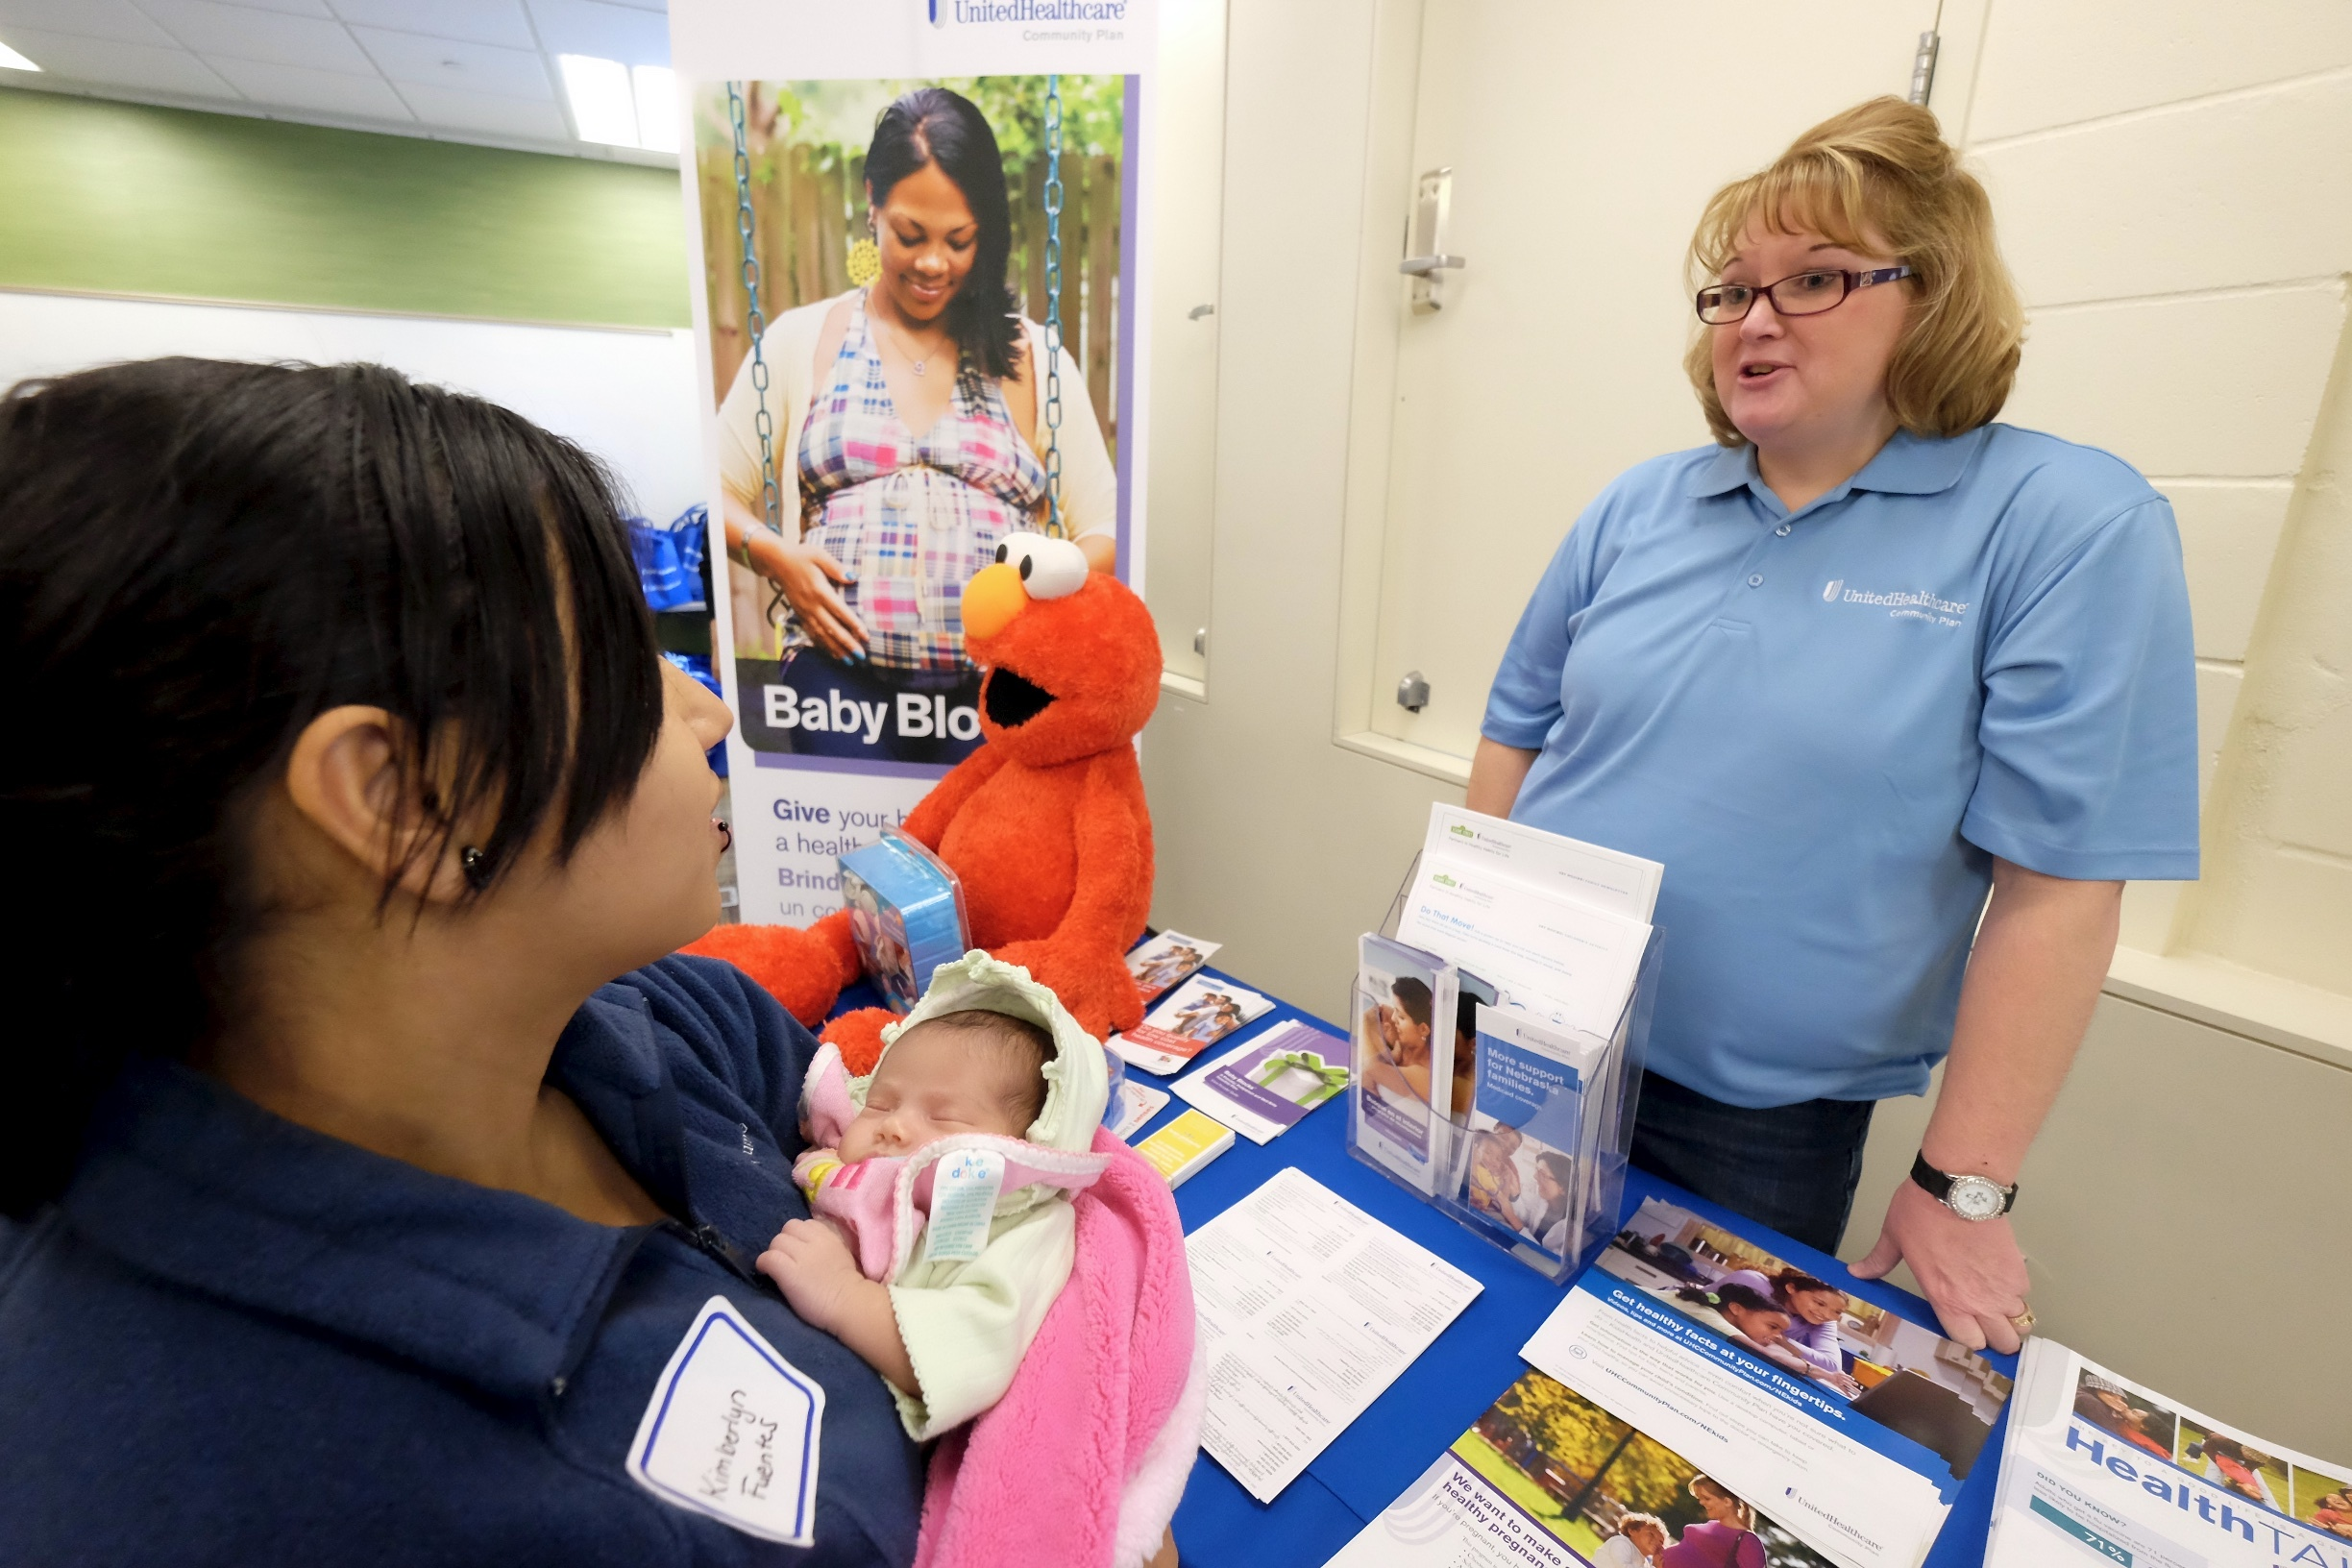 Unitedhealthcare Hosts Community Baby Shower For Educare Indian Hill